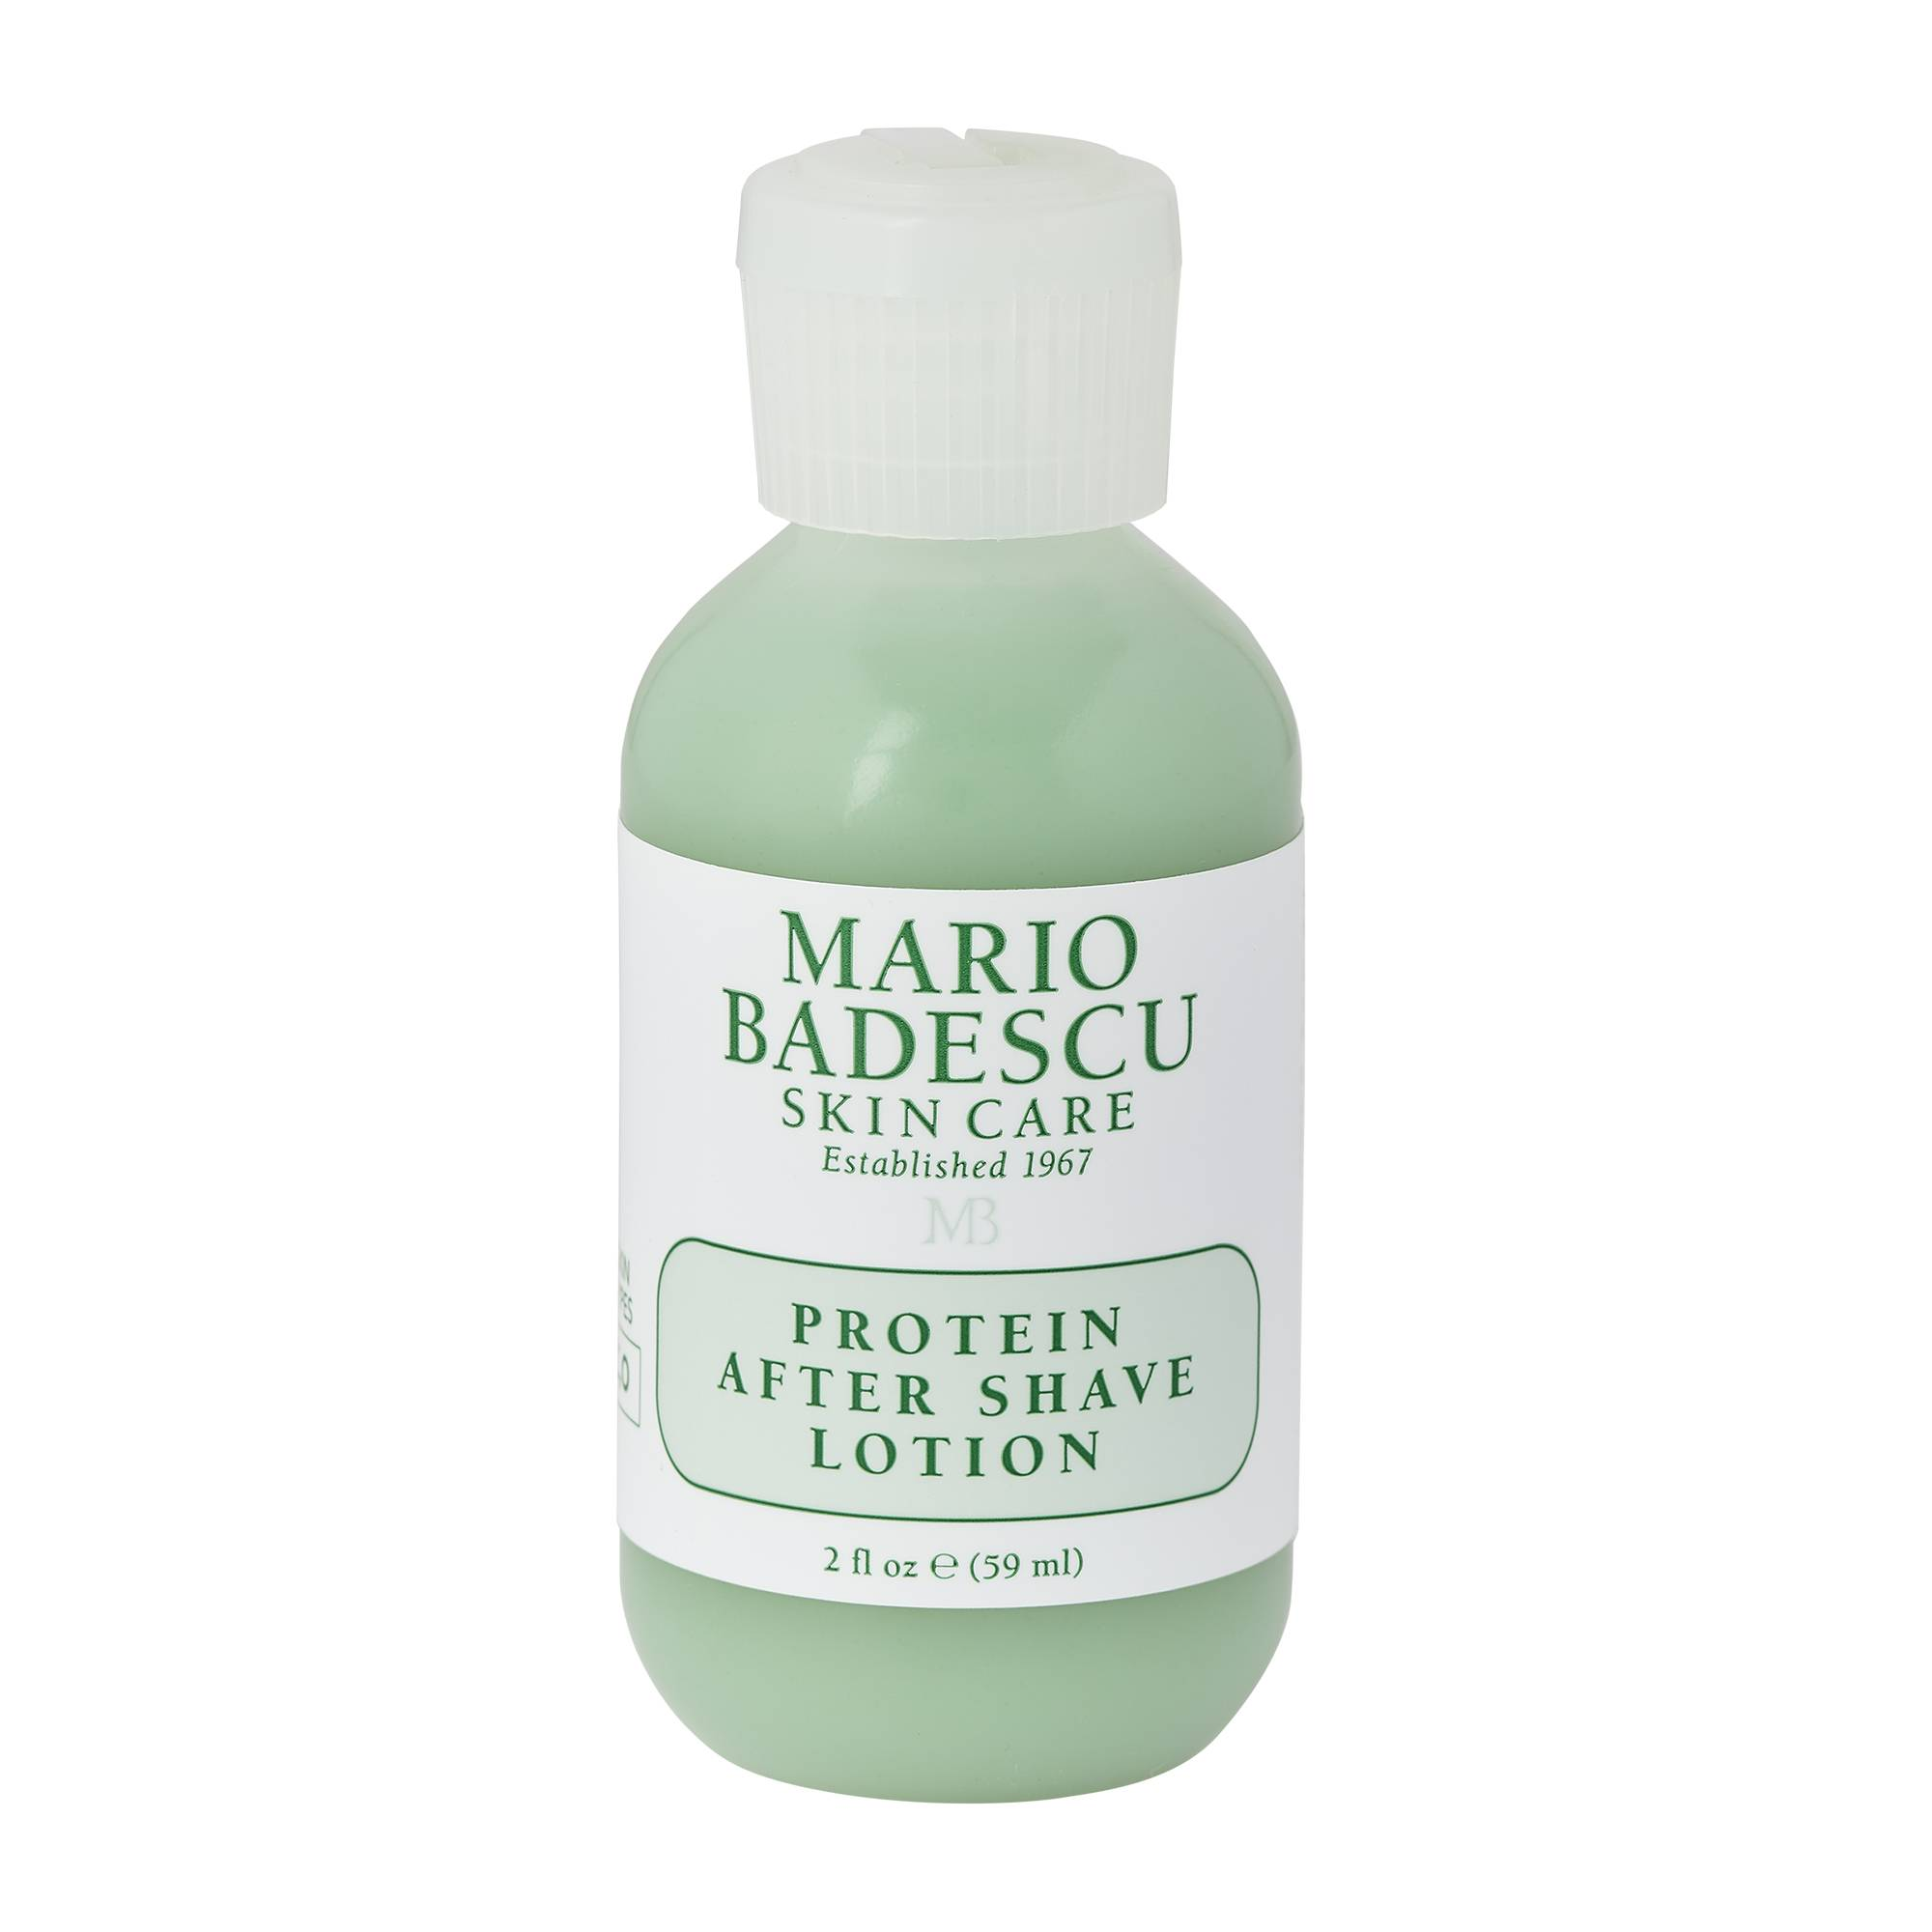 Mario Badescu Protein After Shave Lotion Protein After Shave Lotion 59ml